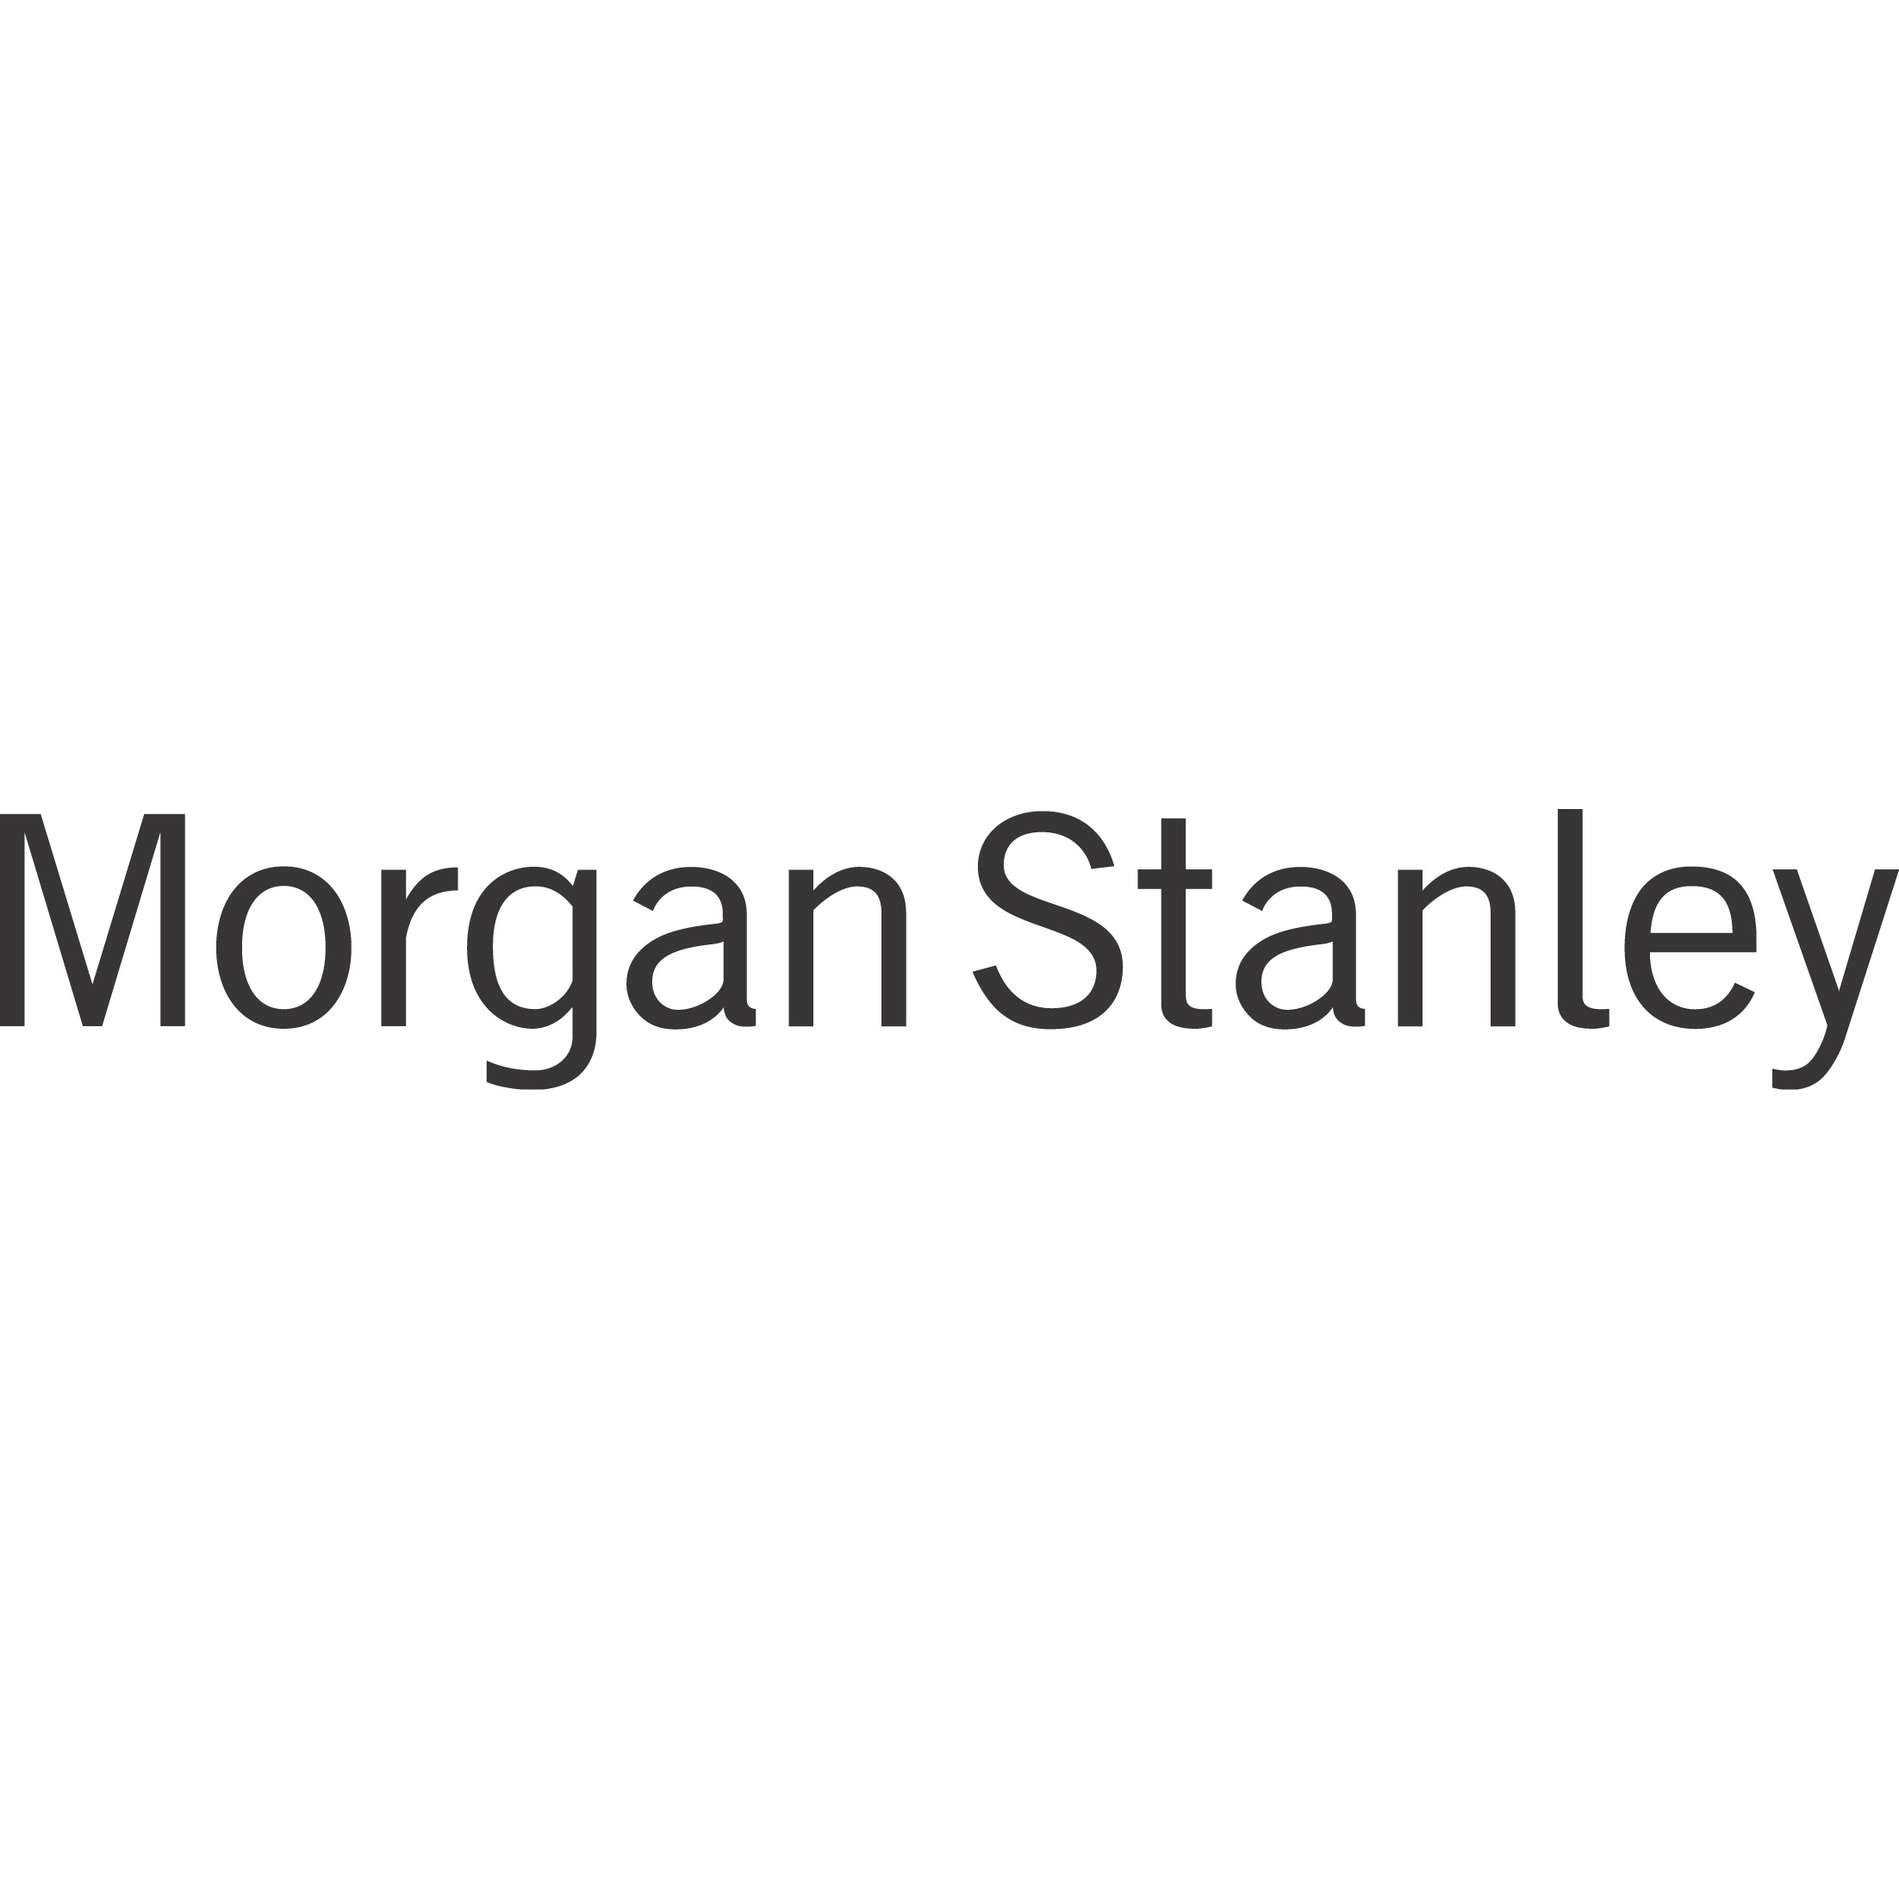 David S Isaacson - Morgan Stanley